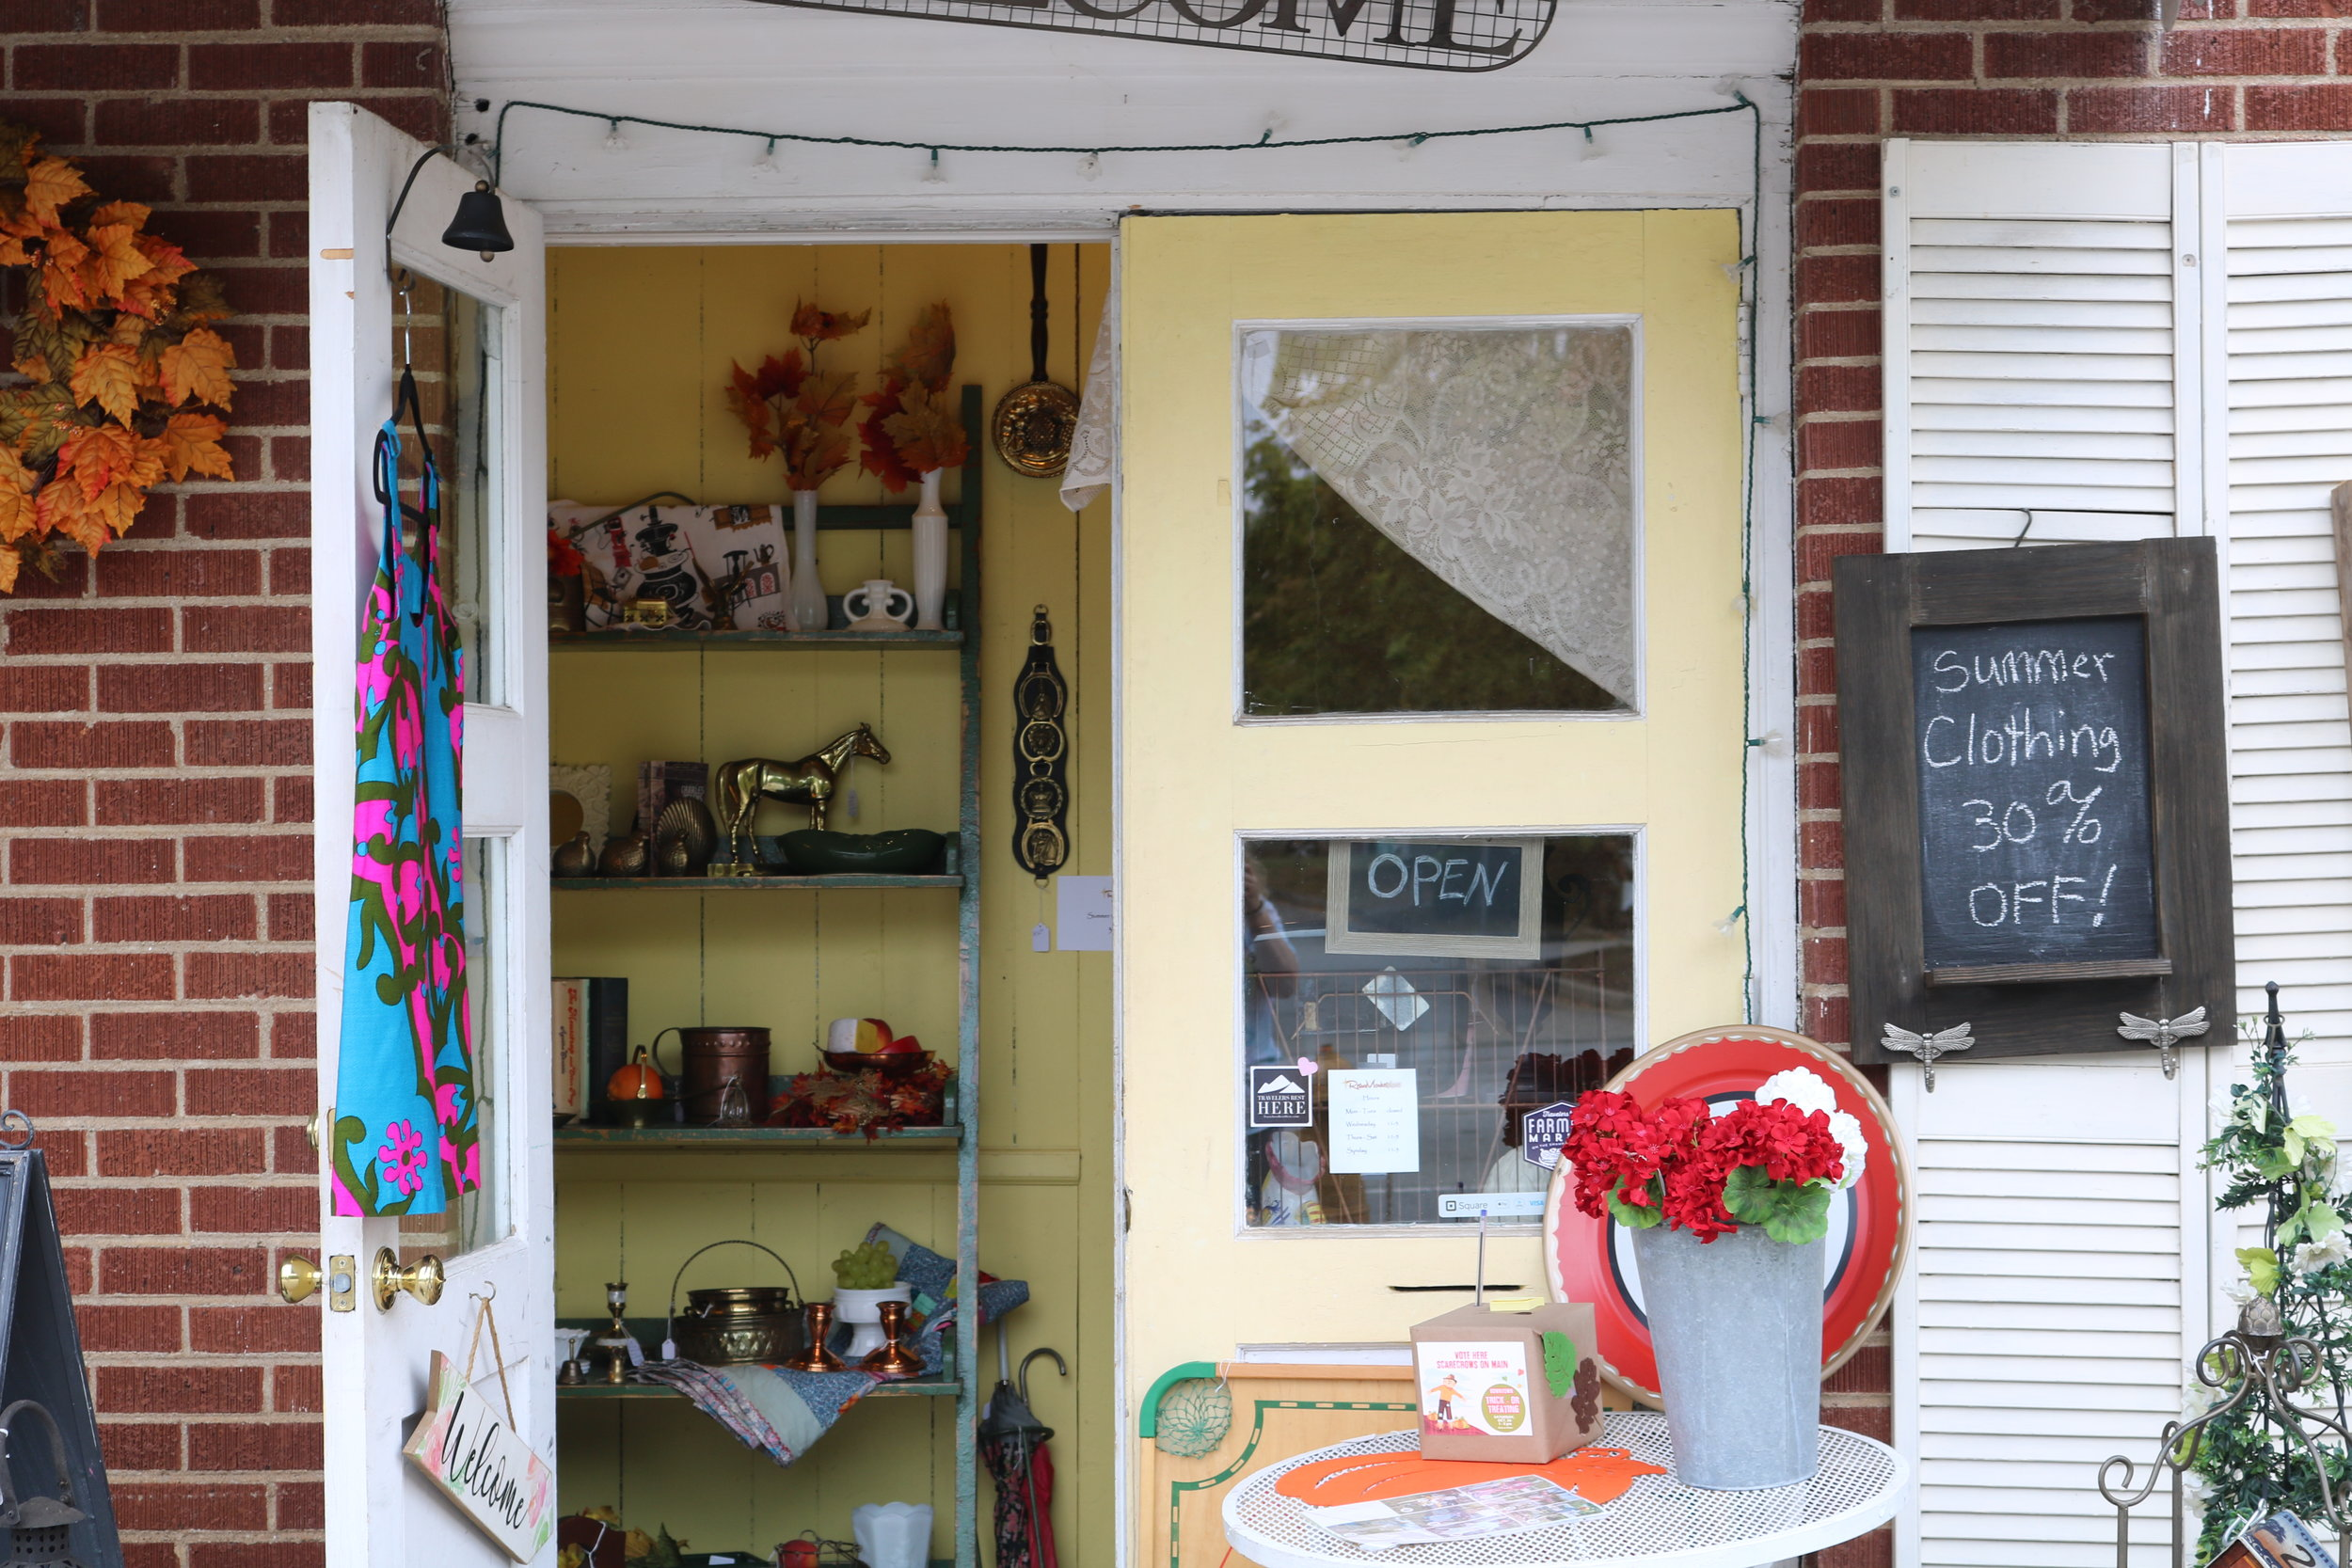 Their bright yellow doors and their trinkets welcomes guests down the stairs to their cute little store.